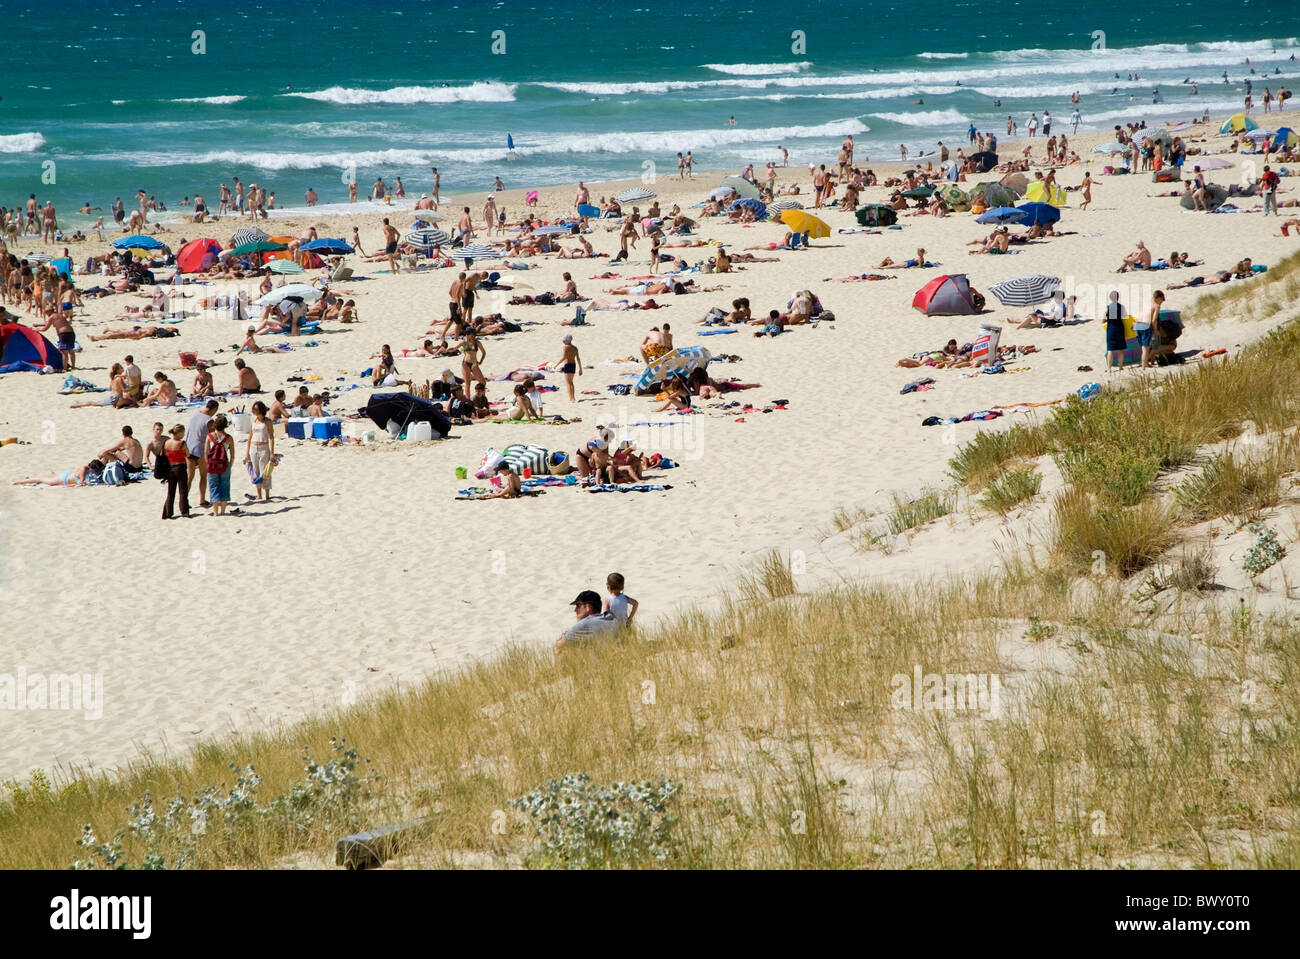 Crowds of people sunbathing on the Biscarrosse beach in Aquitaine, France in the hot summer season - Stock Image